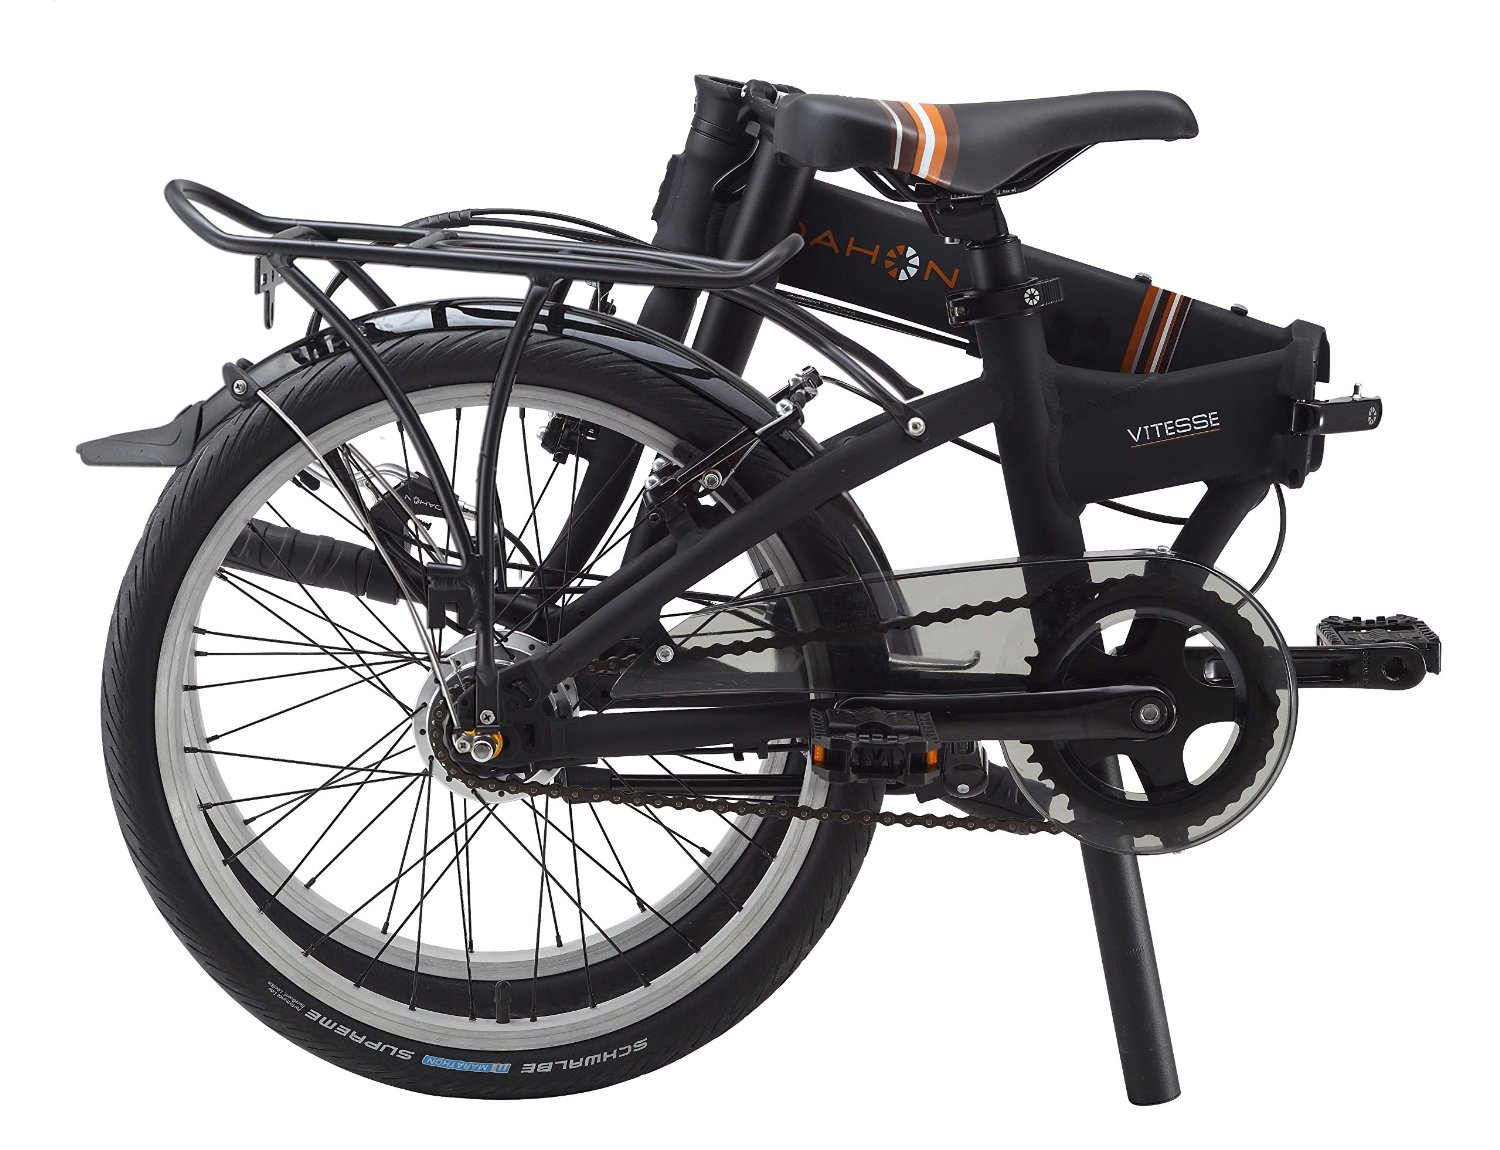 Dahon Vitesse i7 Folding Bike Review